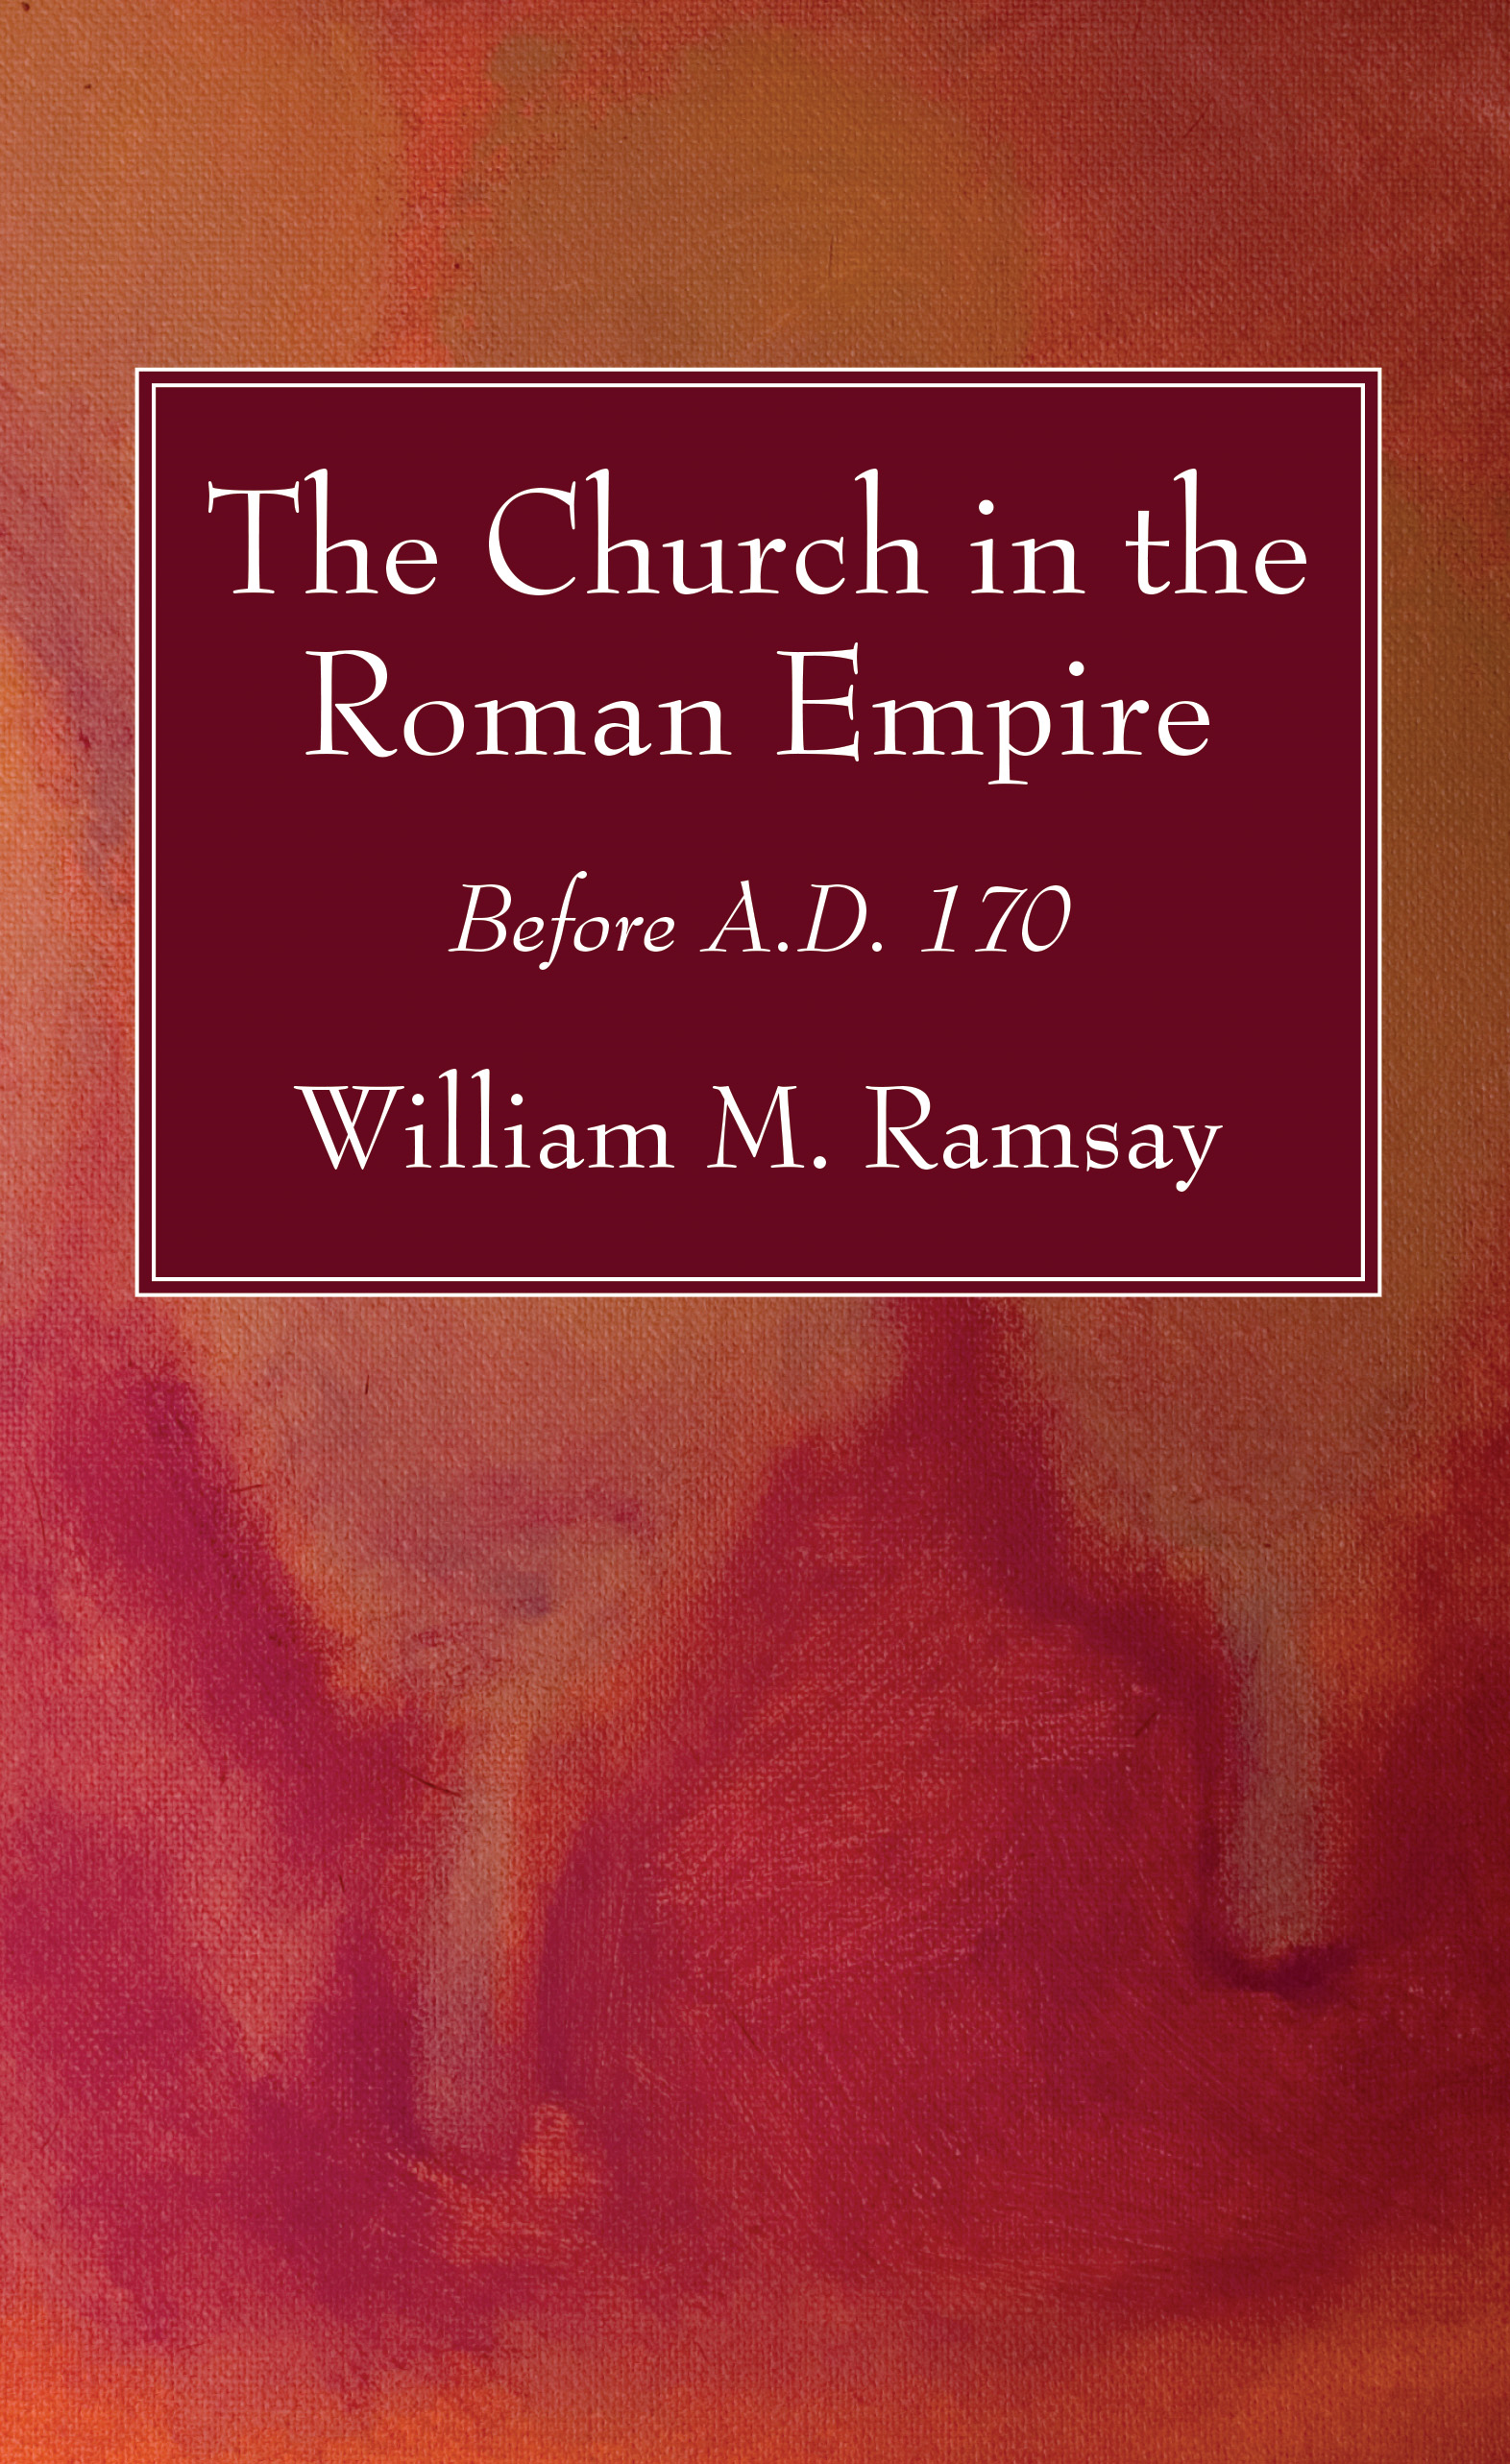 The Church in the Roman Empire